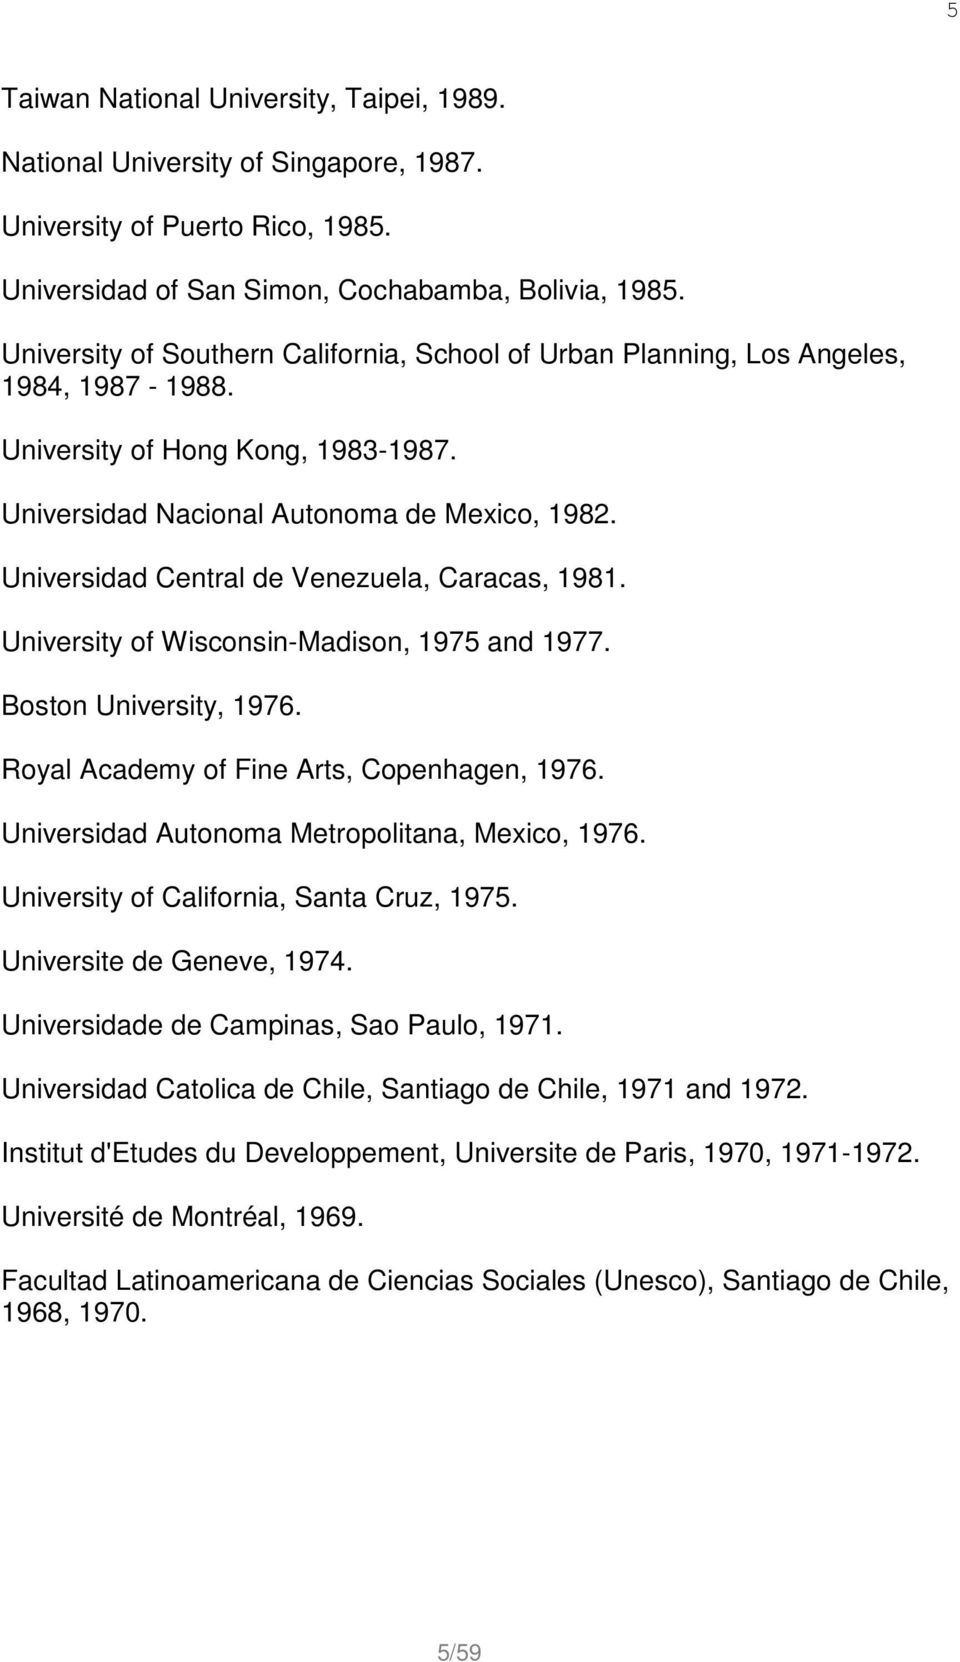 Universidad Central de Venezuela, Caracas, 1981. University of Wisconsin-Madison, 1975 and 1977. Boston University, 1976. Royal Academy of Fine Arts, Copenhagen, 1976.